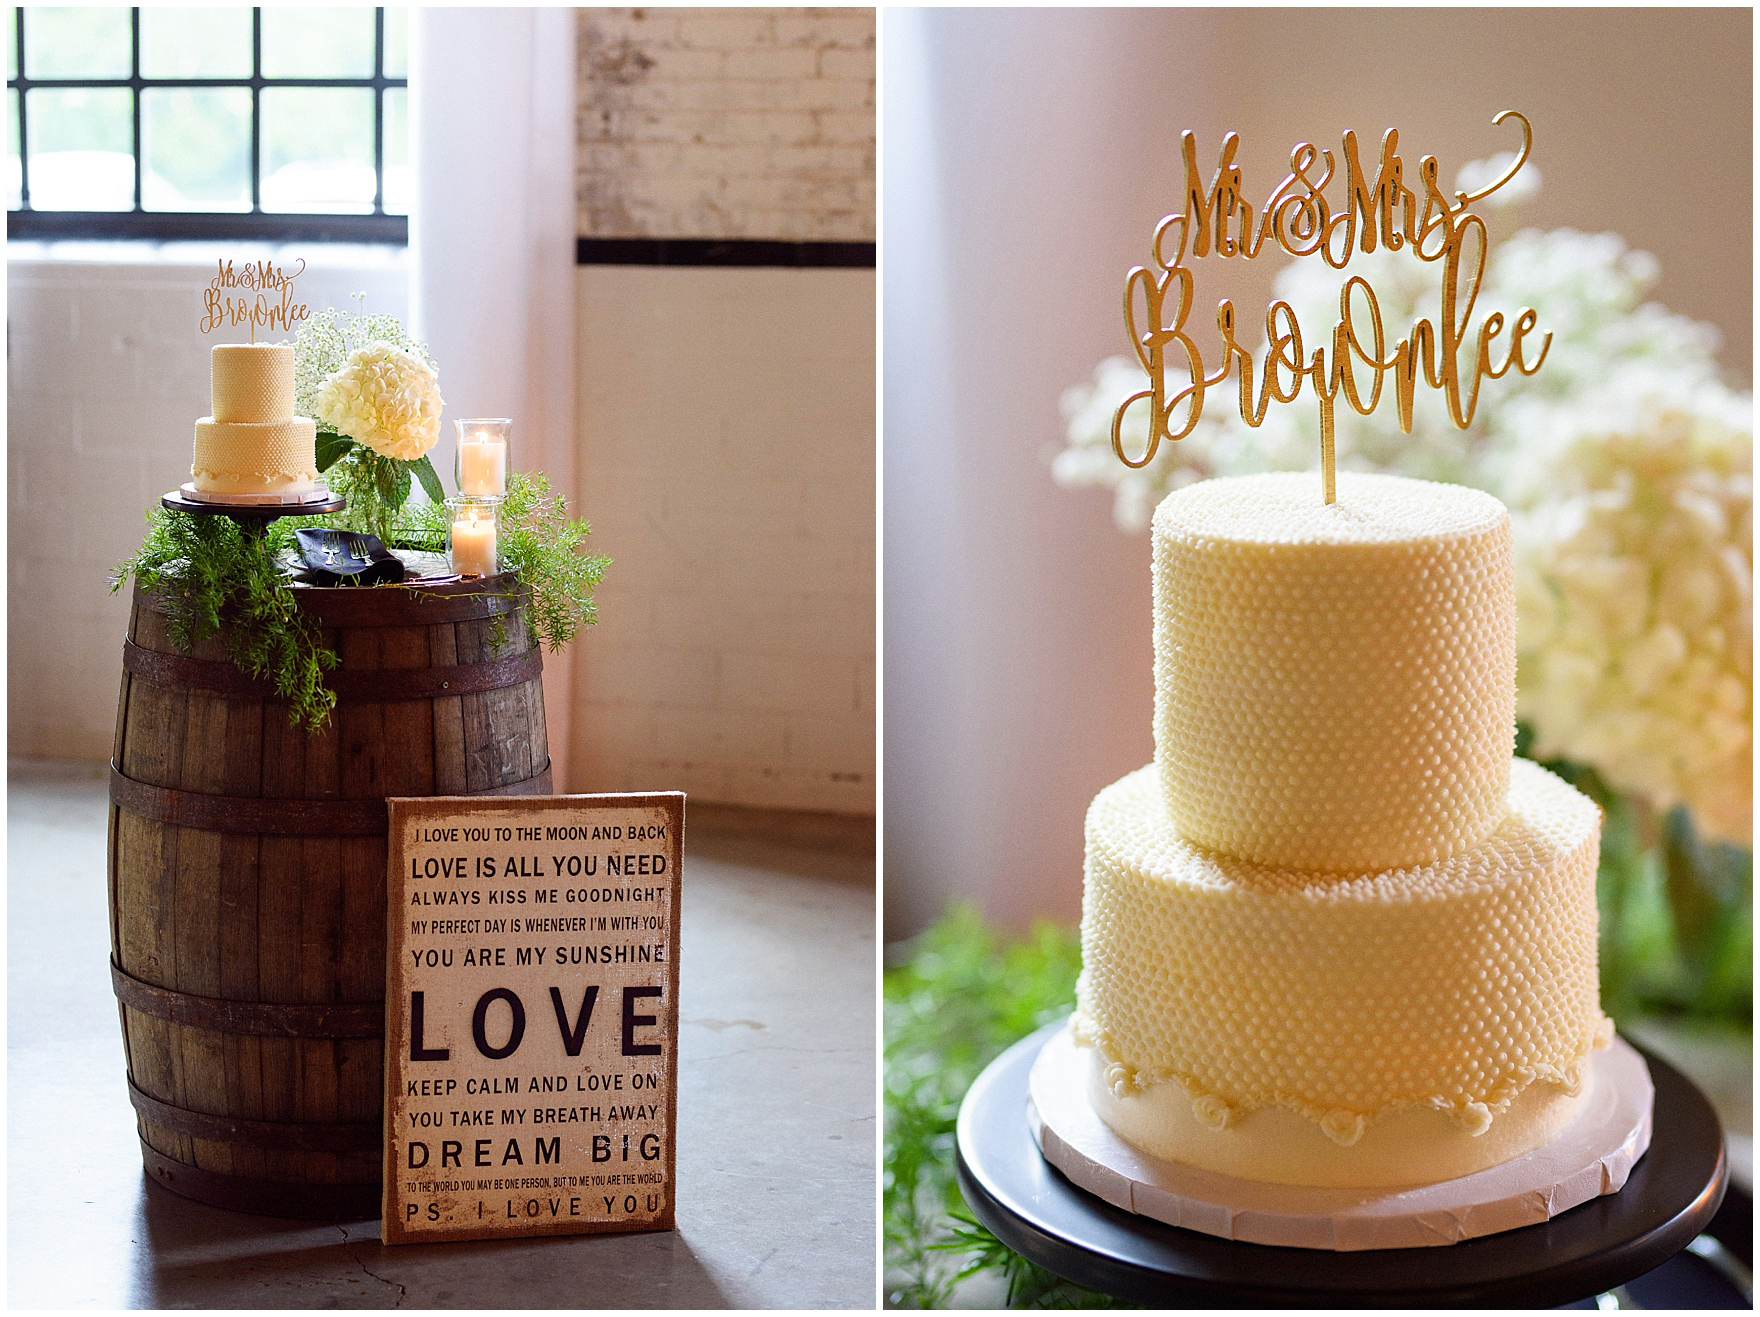 A cake by Magnolia Bakery with a personalized wedding topper at The Brick in South Bend, following a University of Notre Dame wedding.